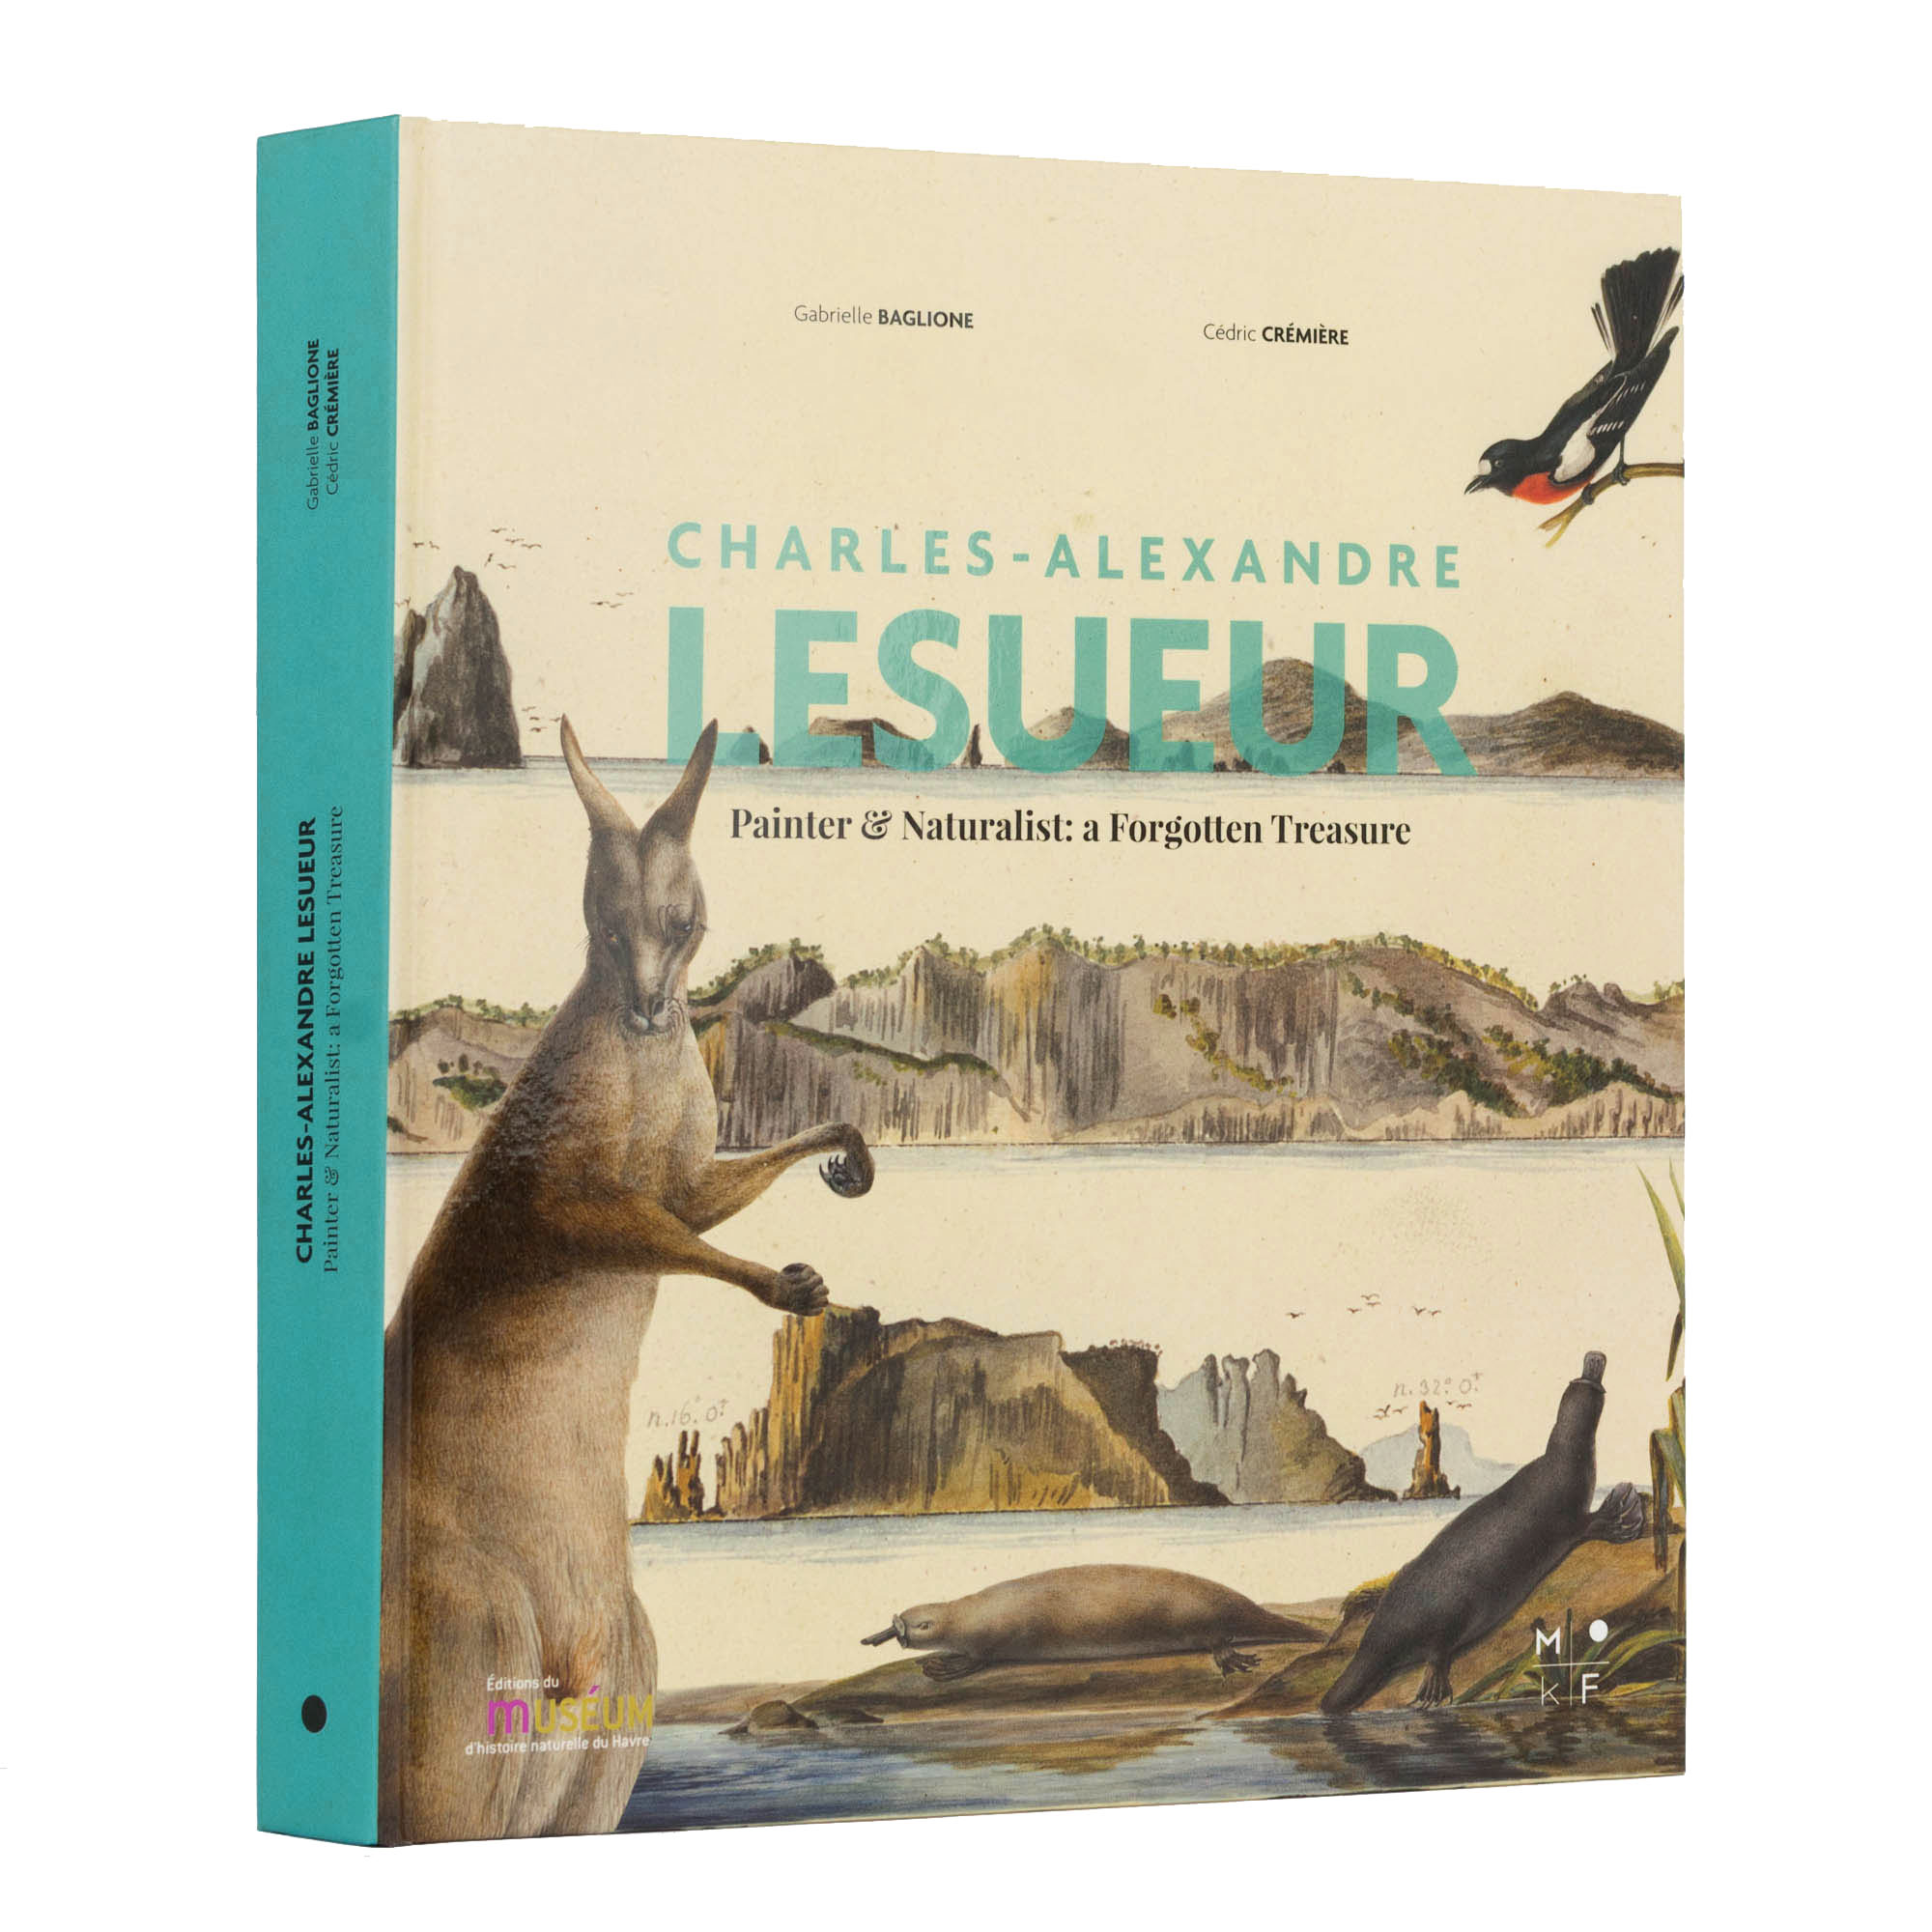 Cover of the book Charles-Alexandre Lesueur, Painter and Naturalist: A Forgotten Treasure